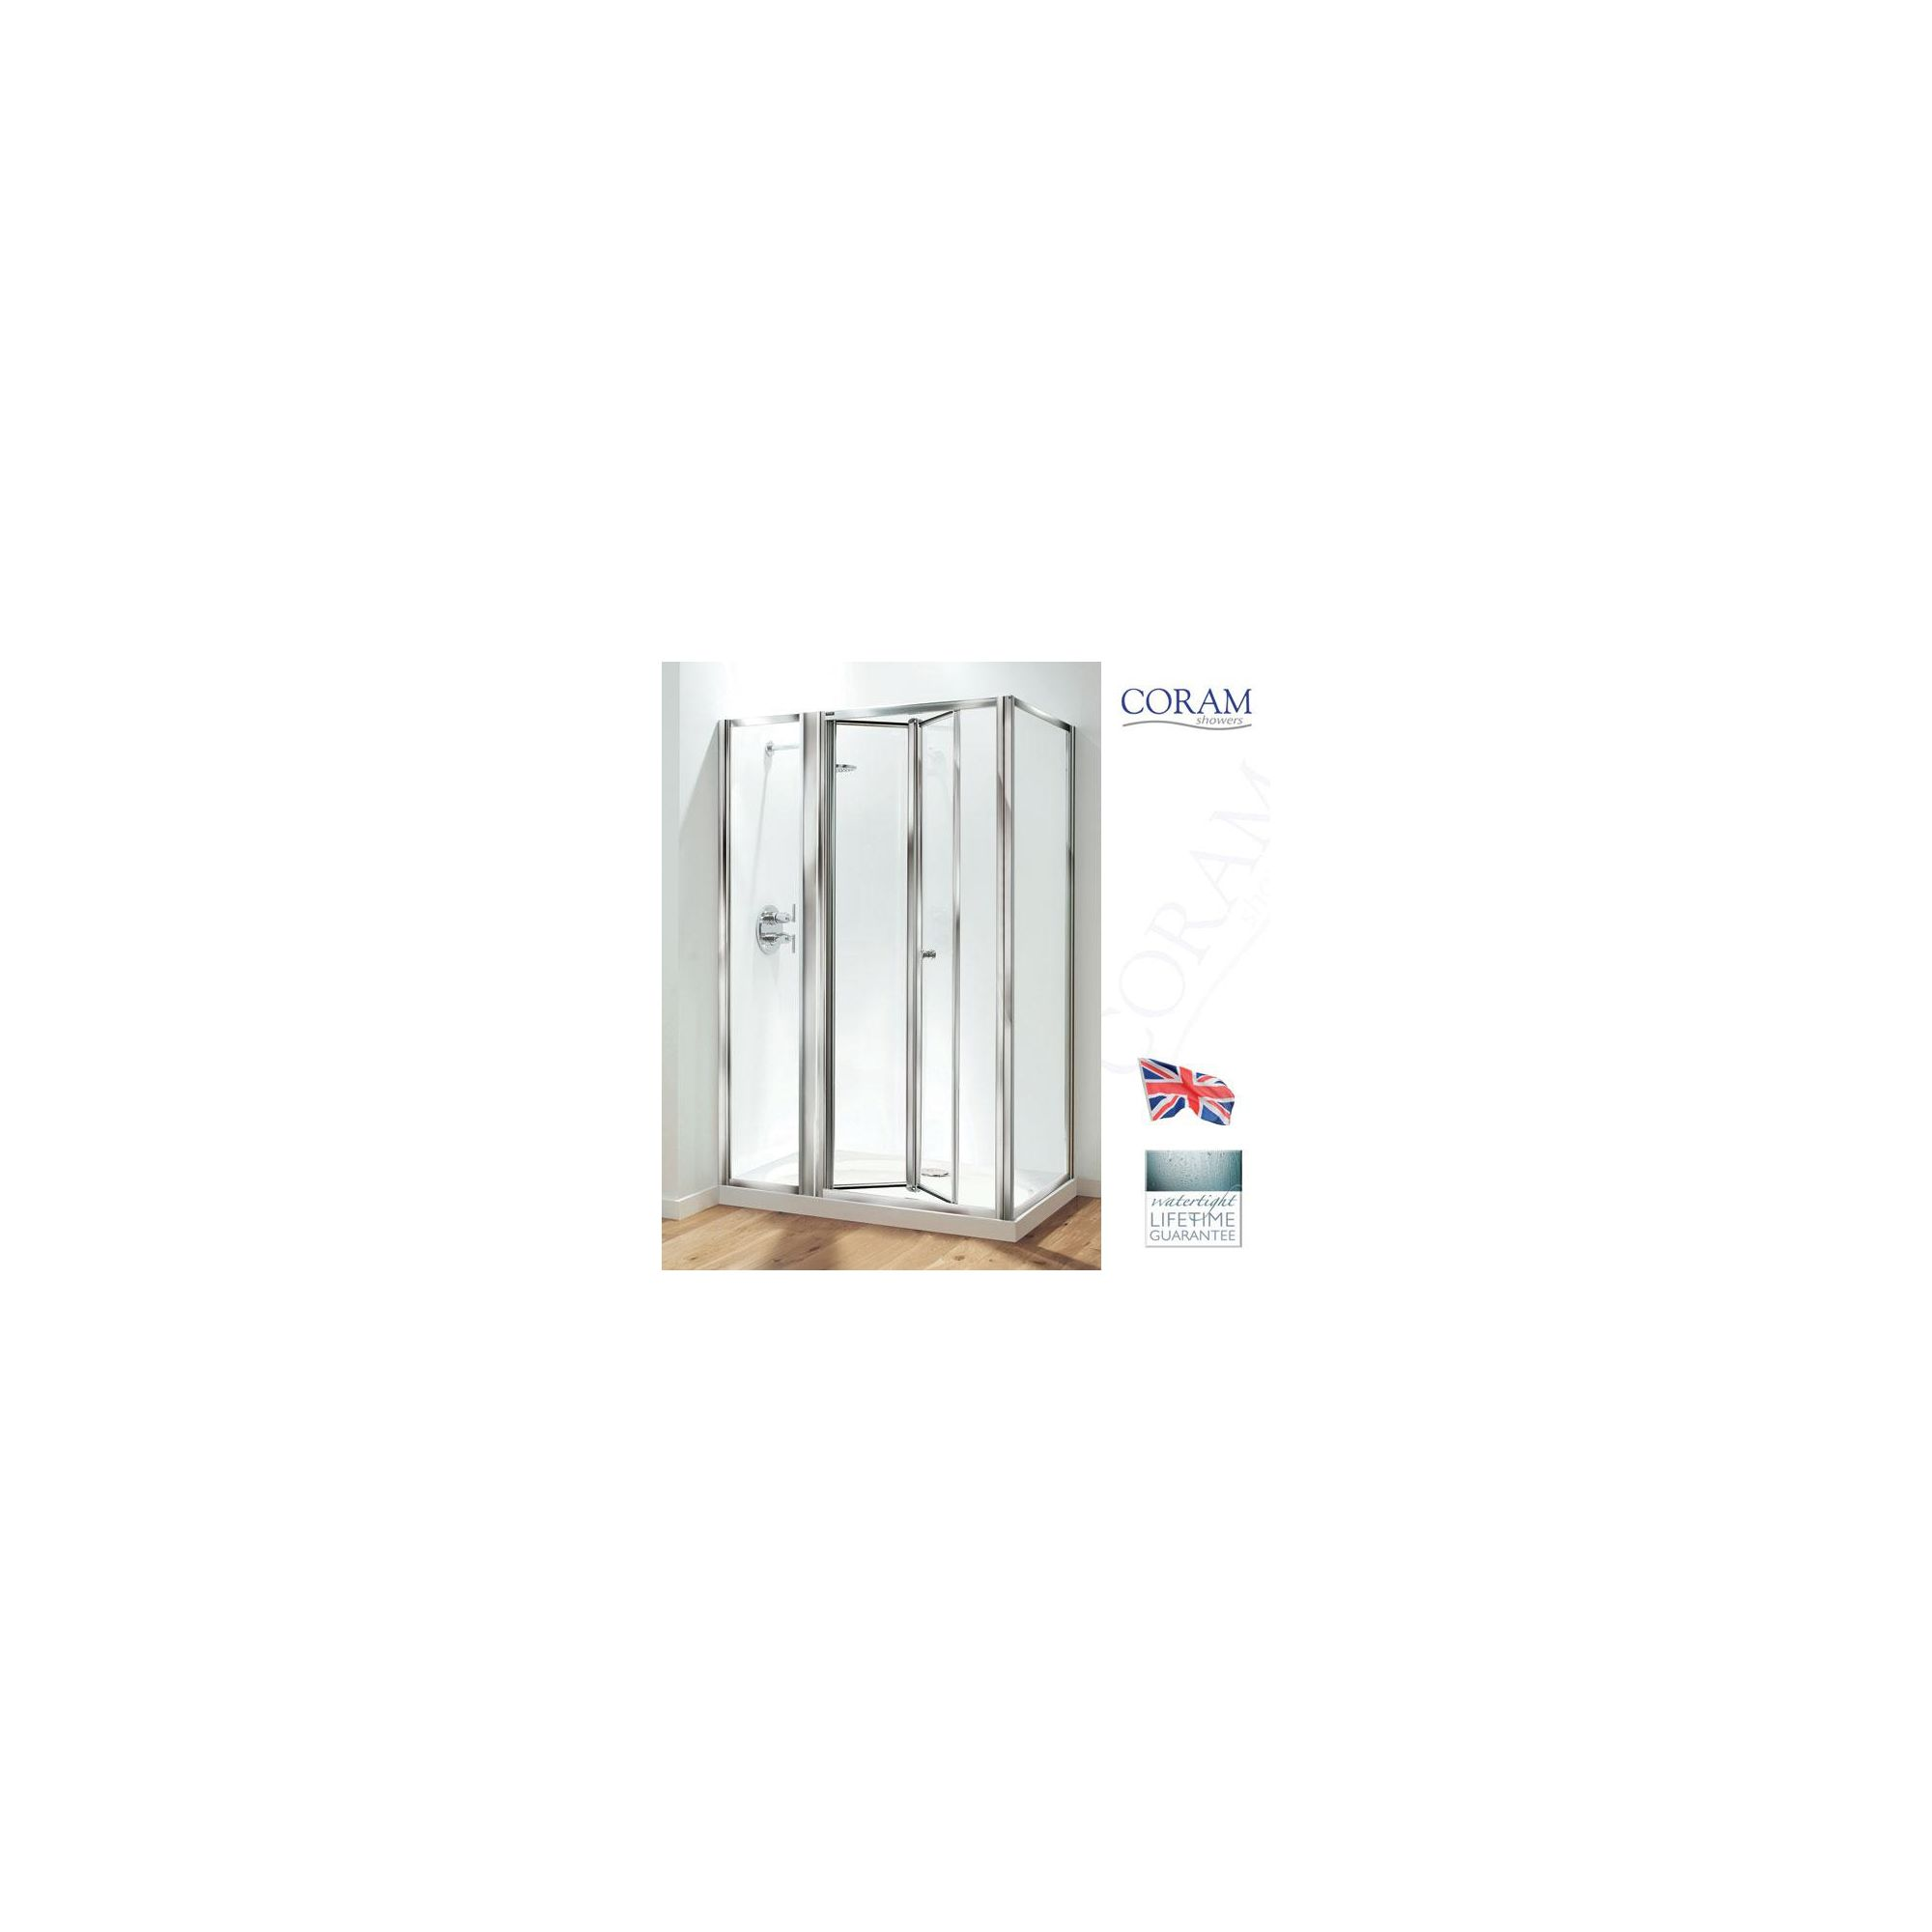 Coram Optima Inline Bi-Fold Door Shower Enclosure, 1200mm x 800mm, Low Profile Tray, 6mm Glass at Tesco Direct